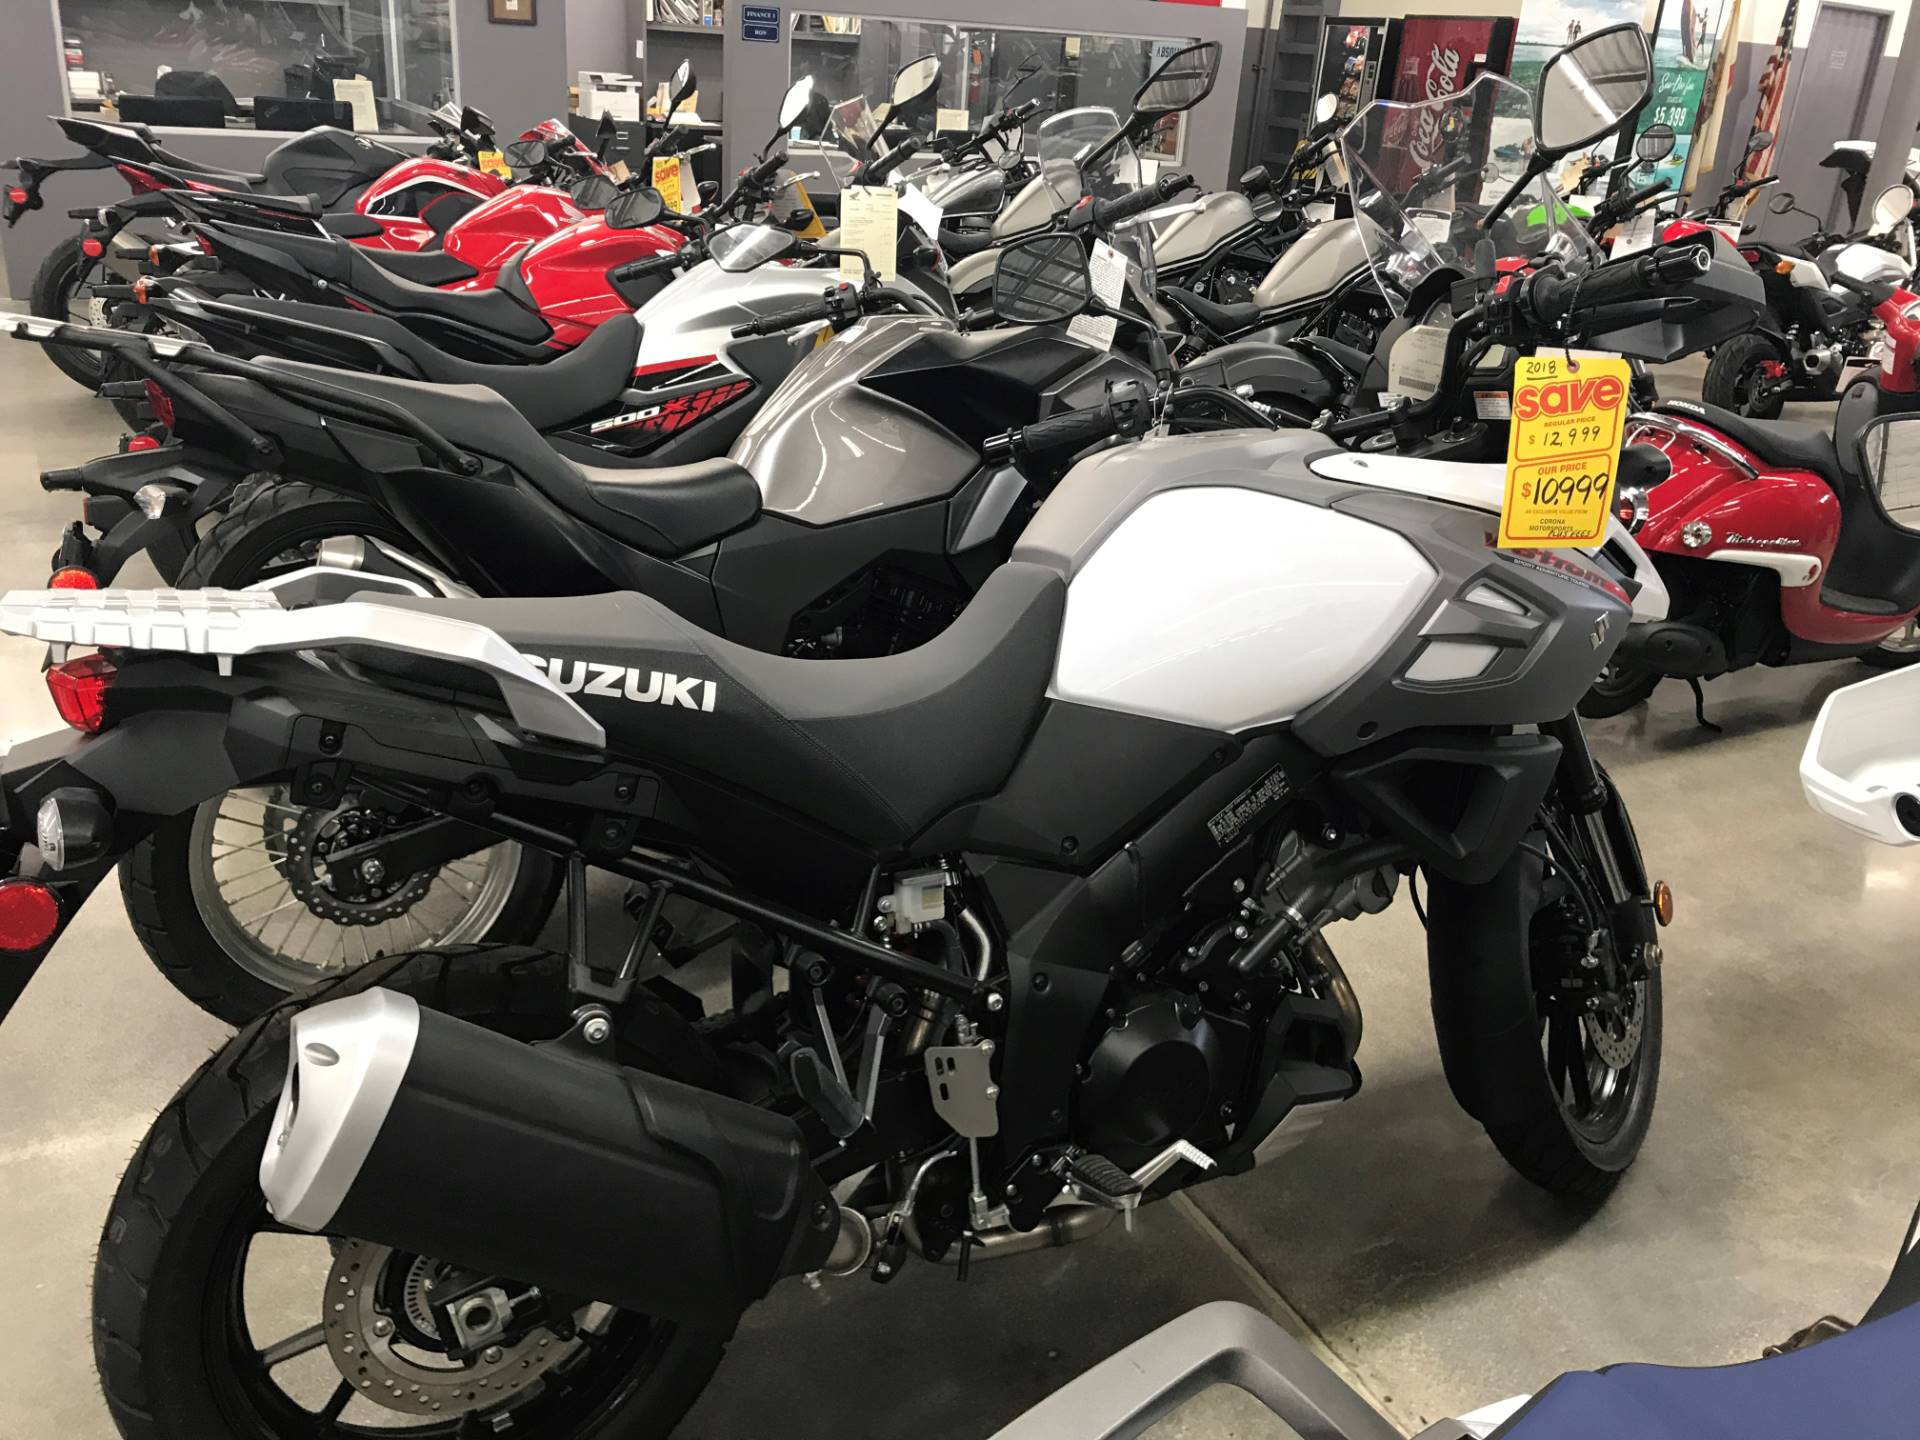 2018 Suzuki V-Strom 1000 in Corona, California - Photo 1